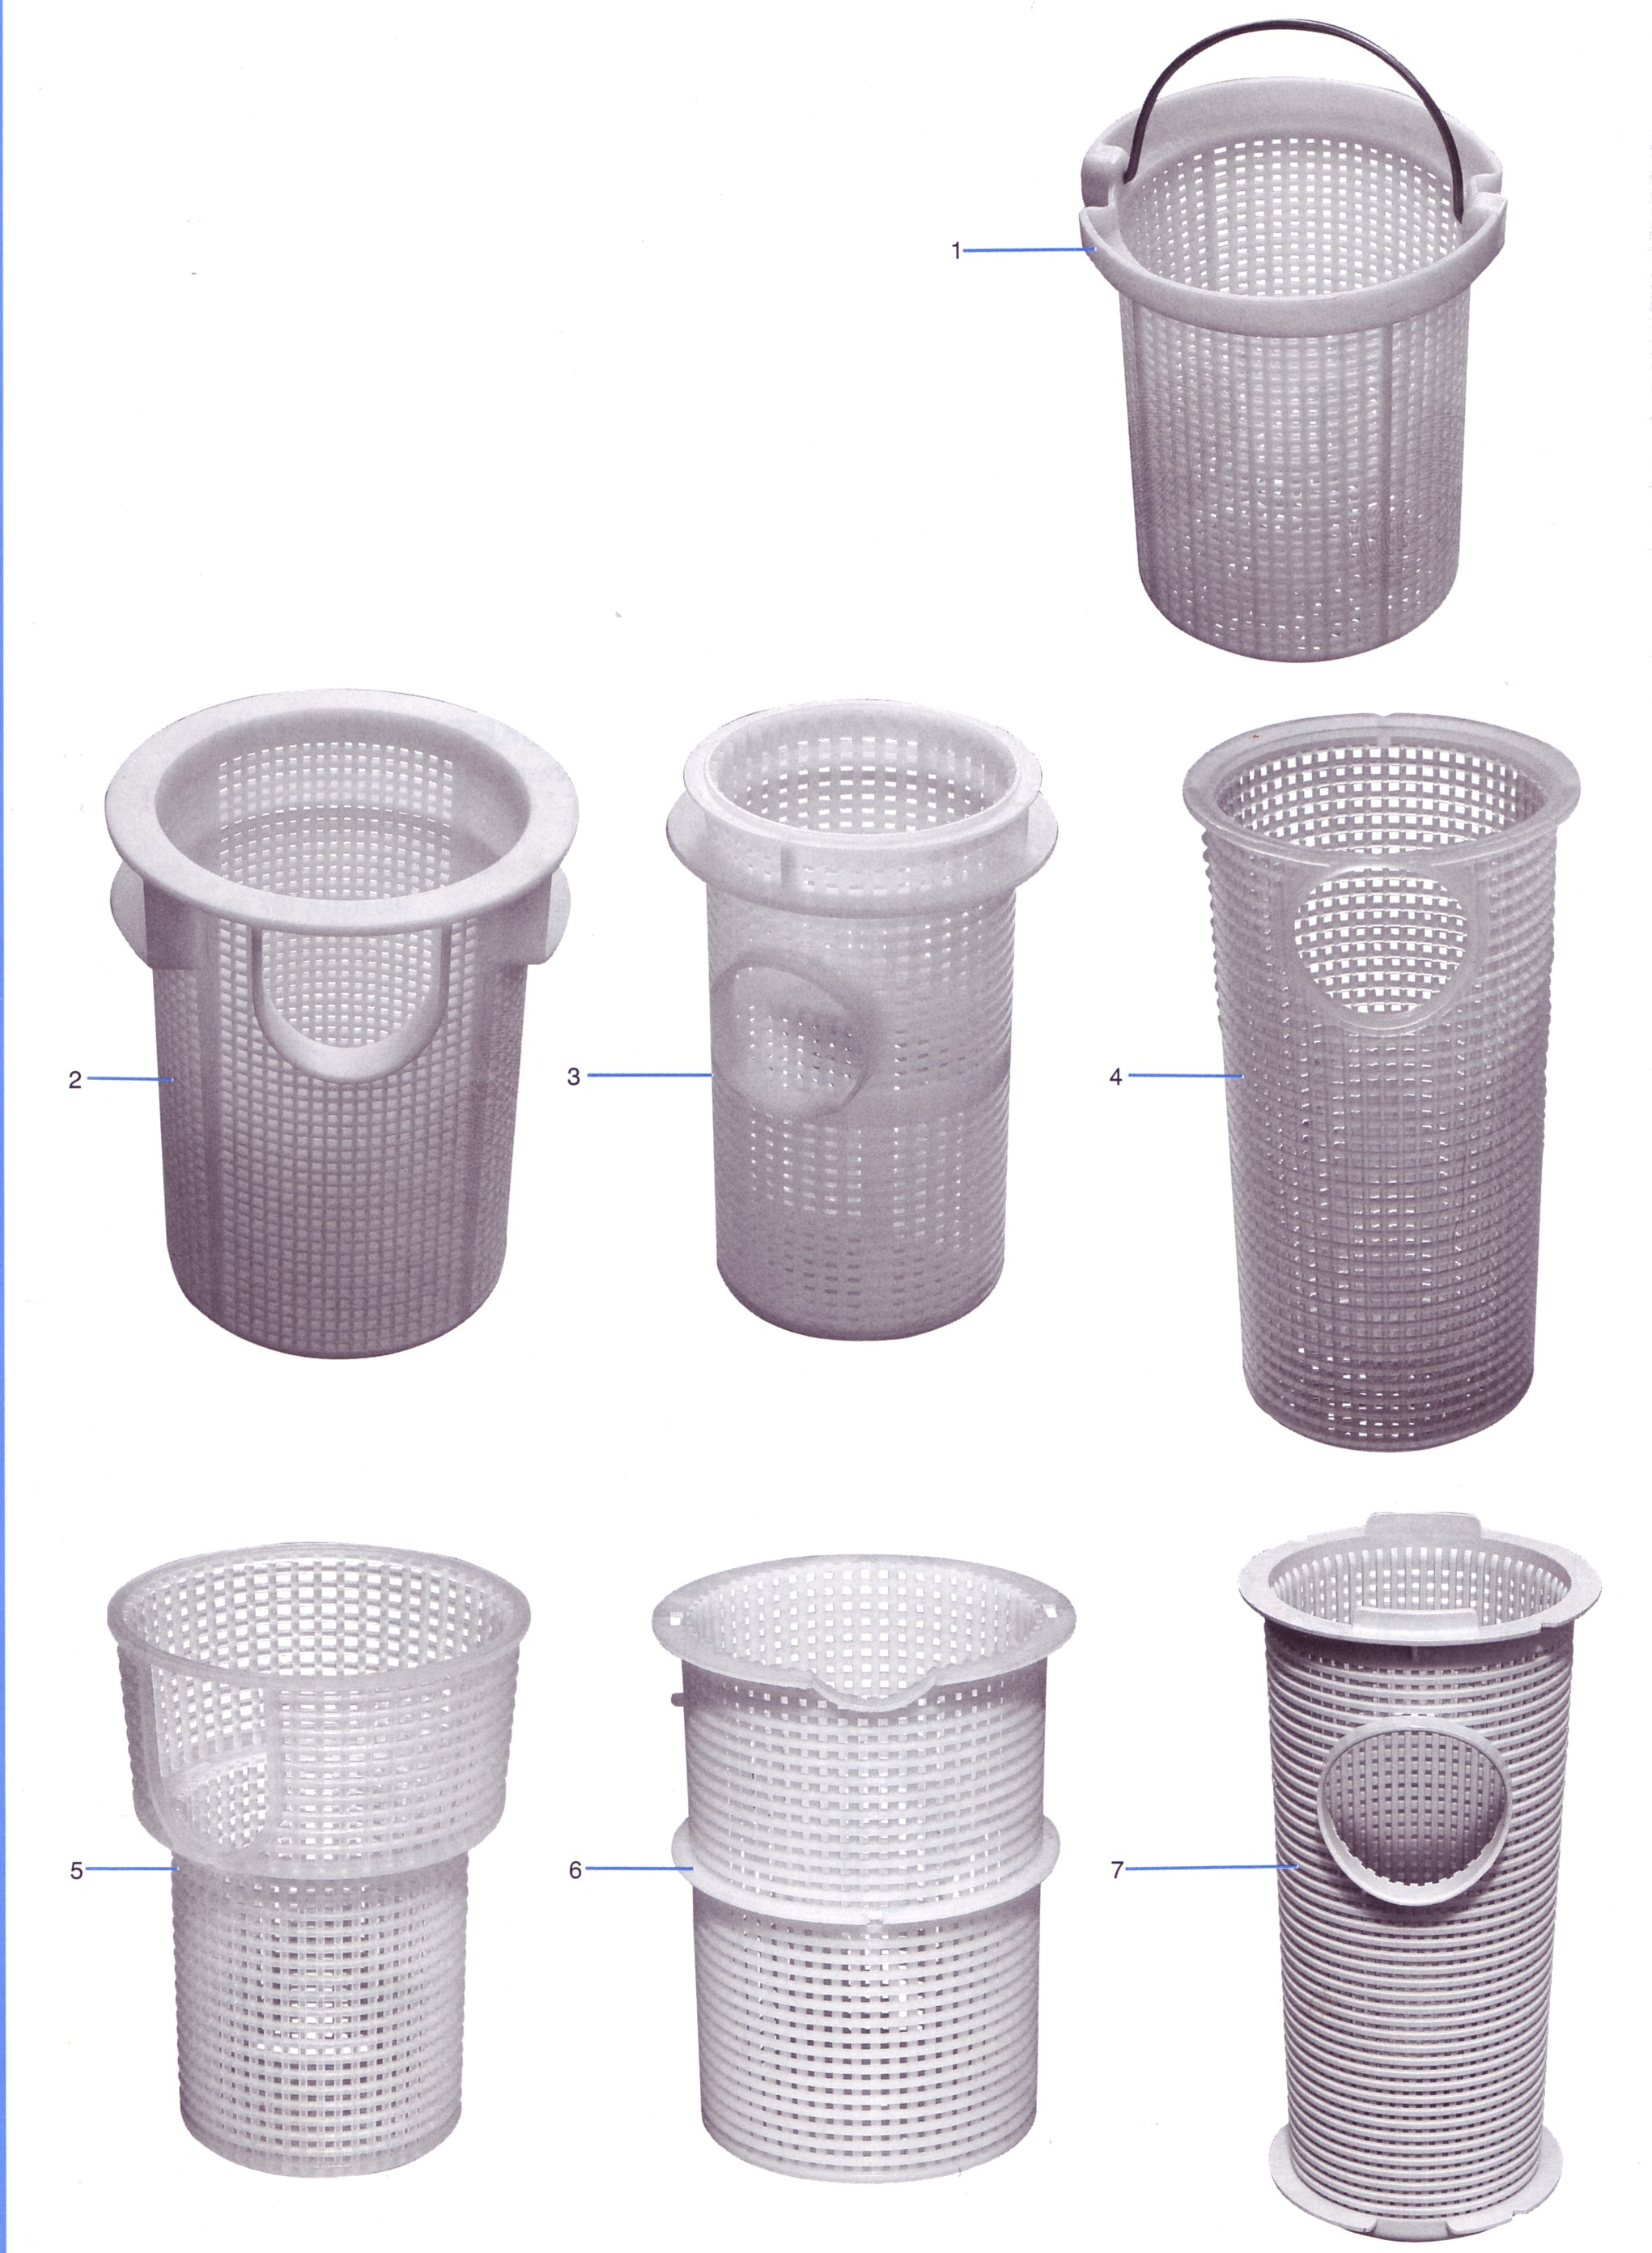 Swimming pool pump baskets - Strainer basket for swimming pool ...